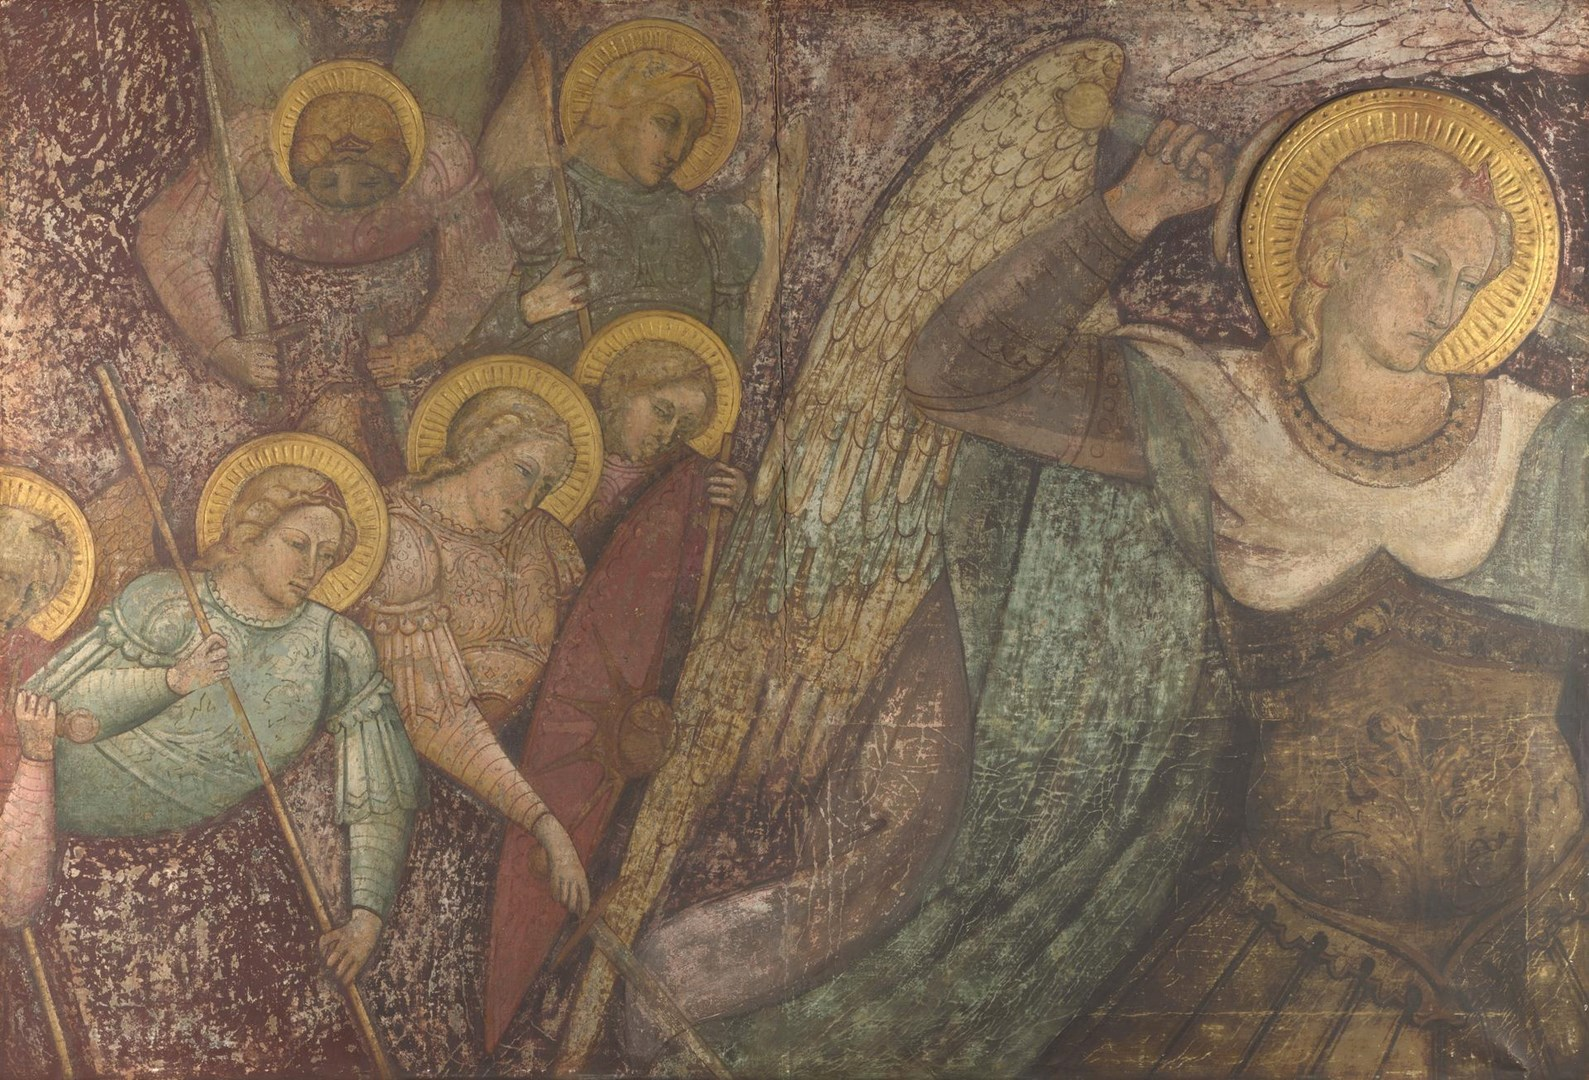 Saint Michael and Other Angels by Spinello Aretino